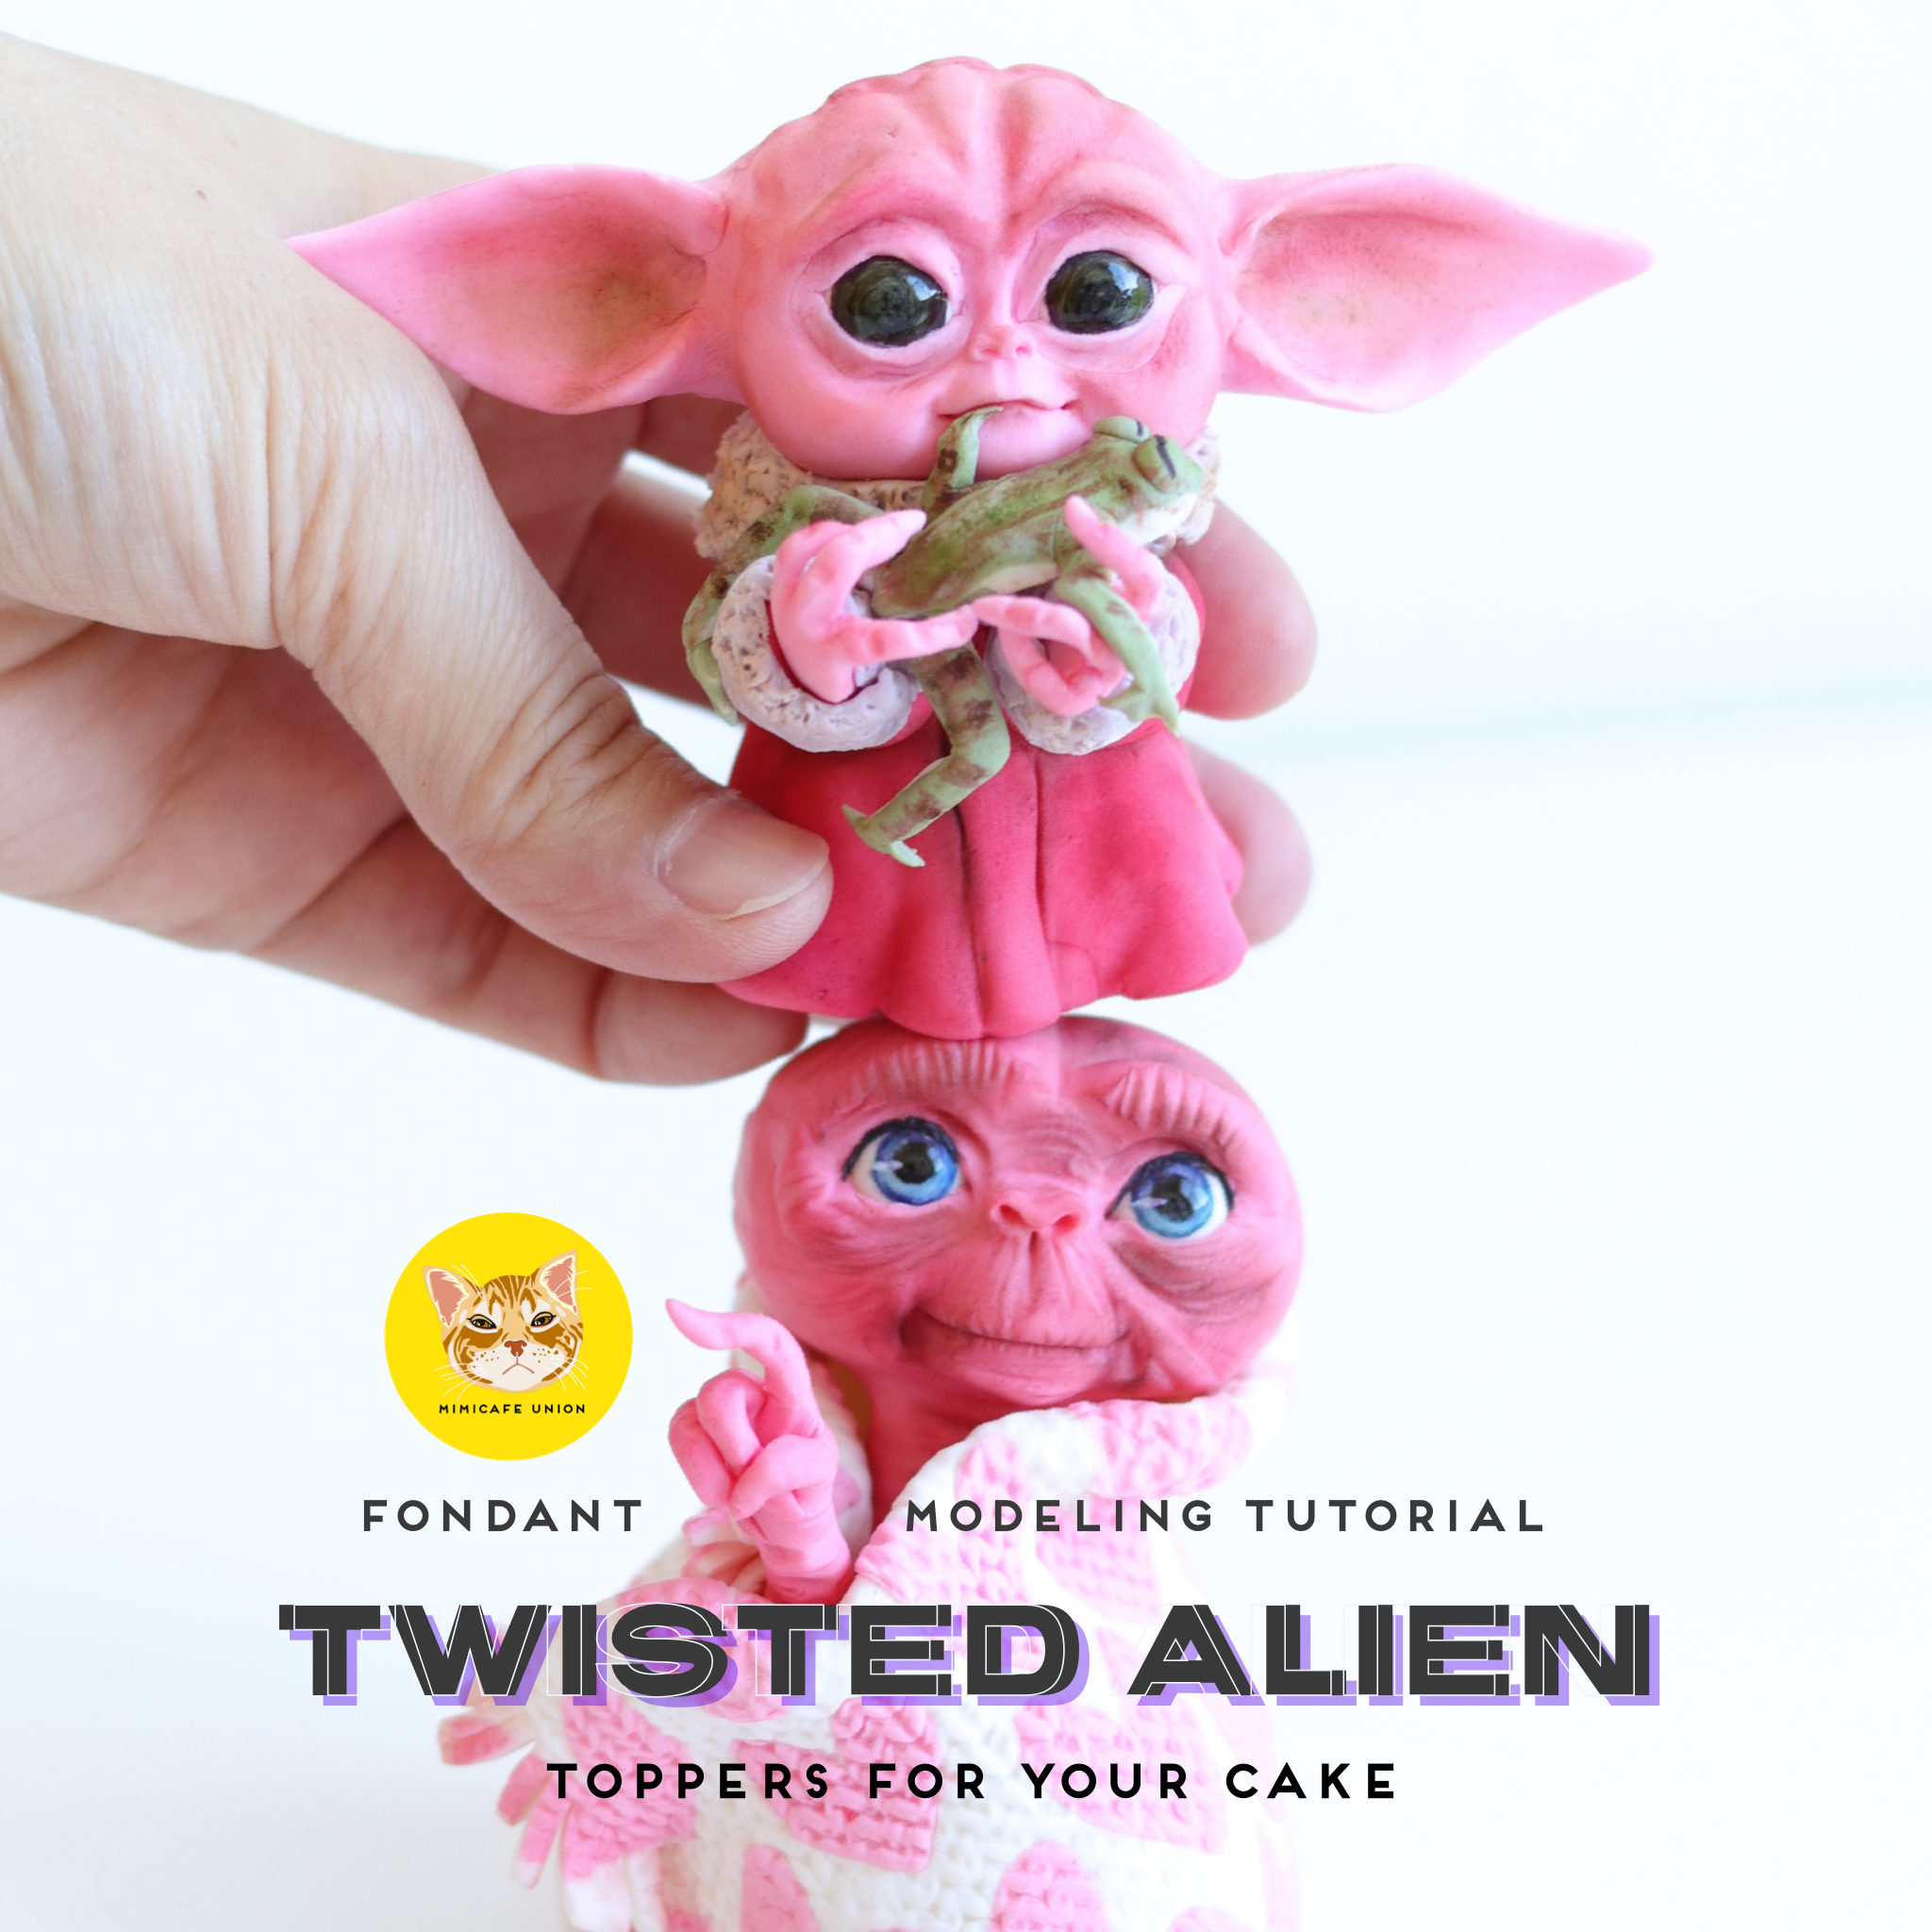 TWISTED ALIEN TOPPERS ON YOUR CAKE